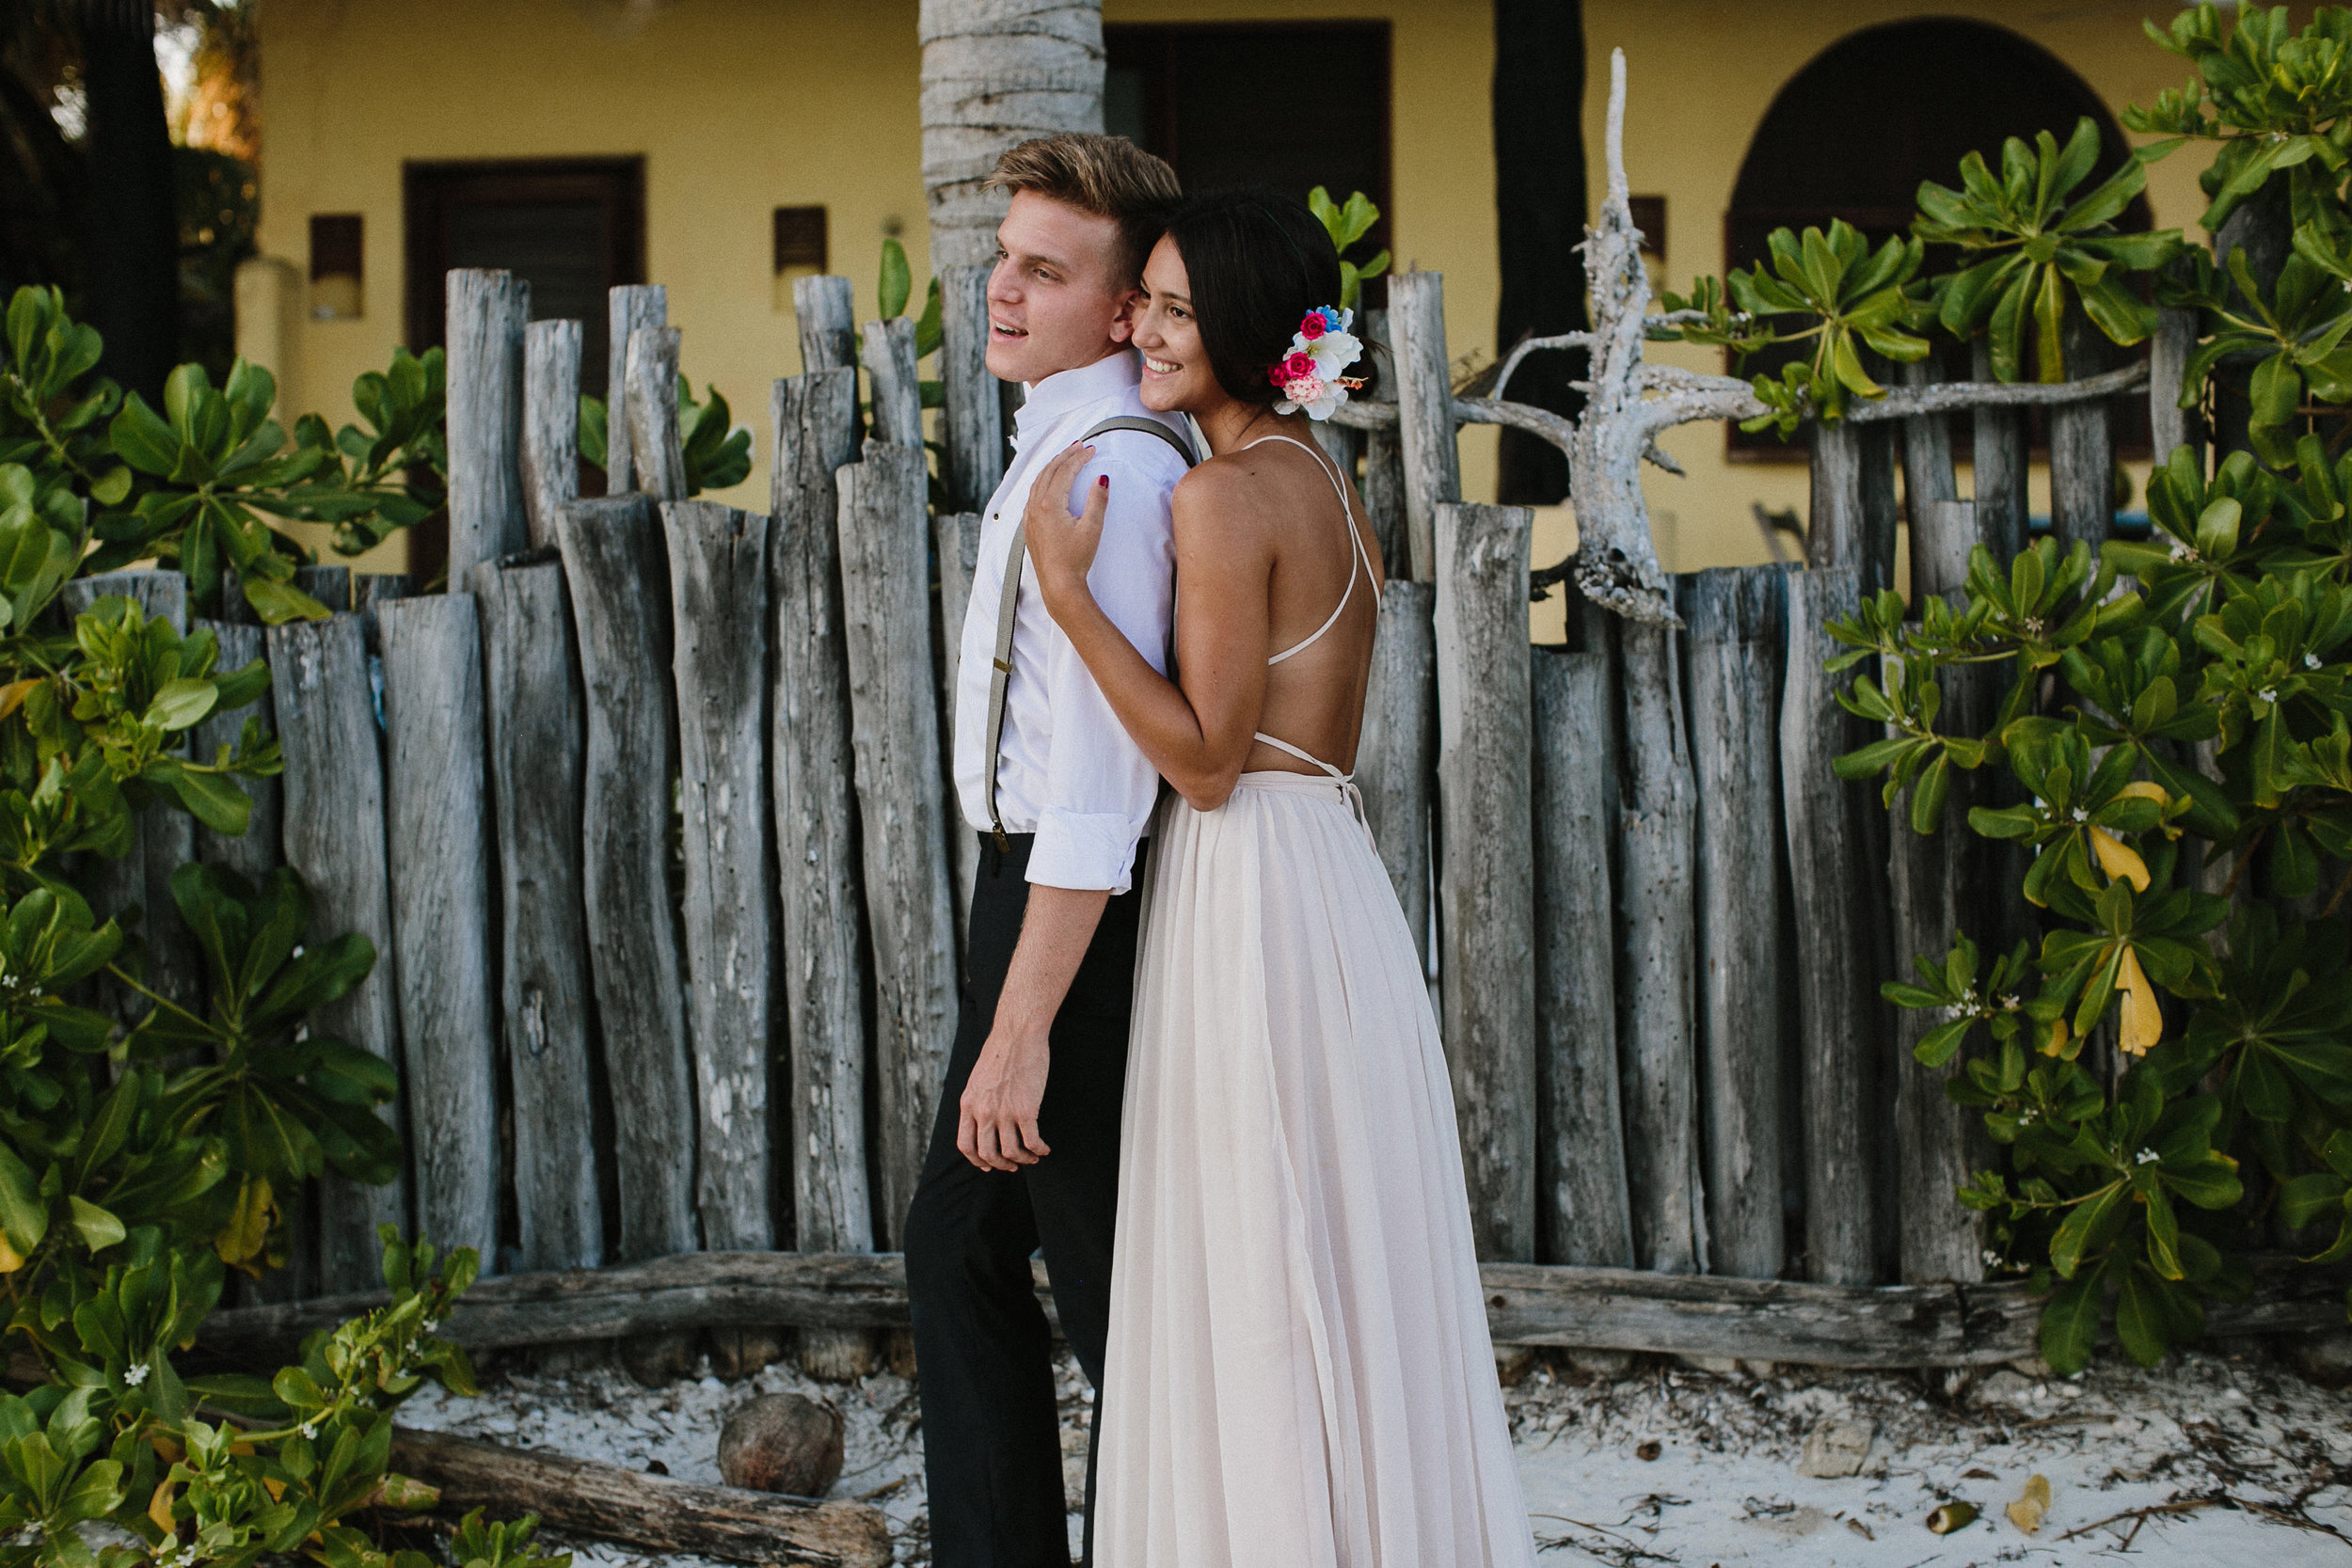 alfonso_flores_destination_wedding_photographer_holbox_nomada_workshop-197.jpg